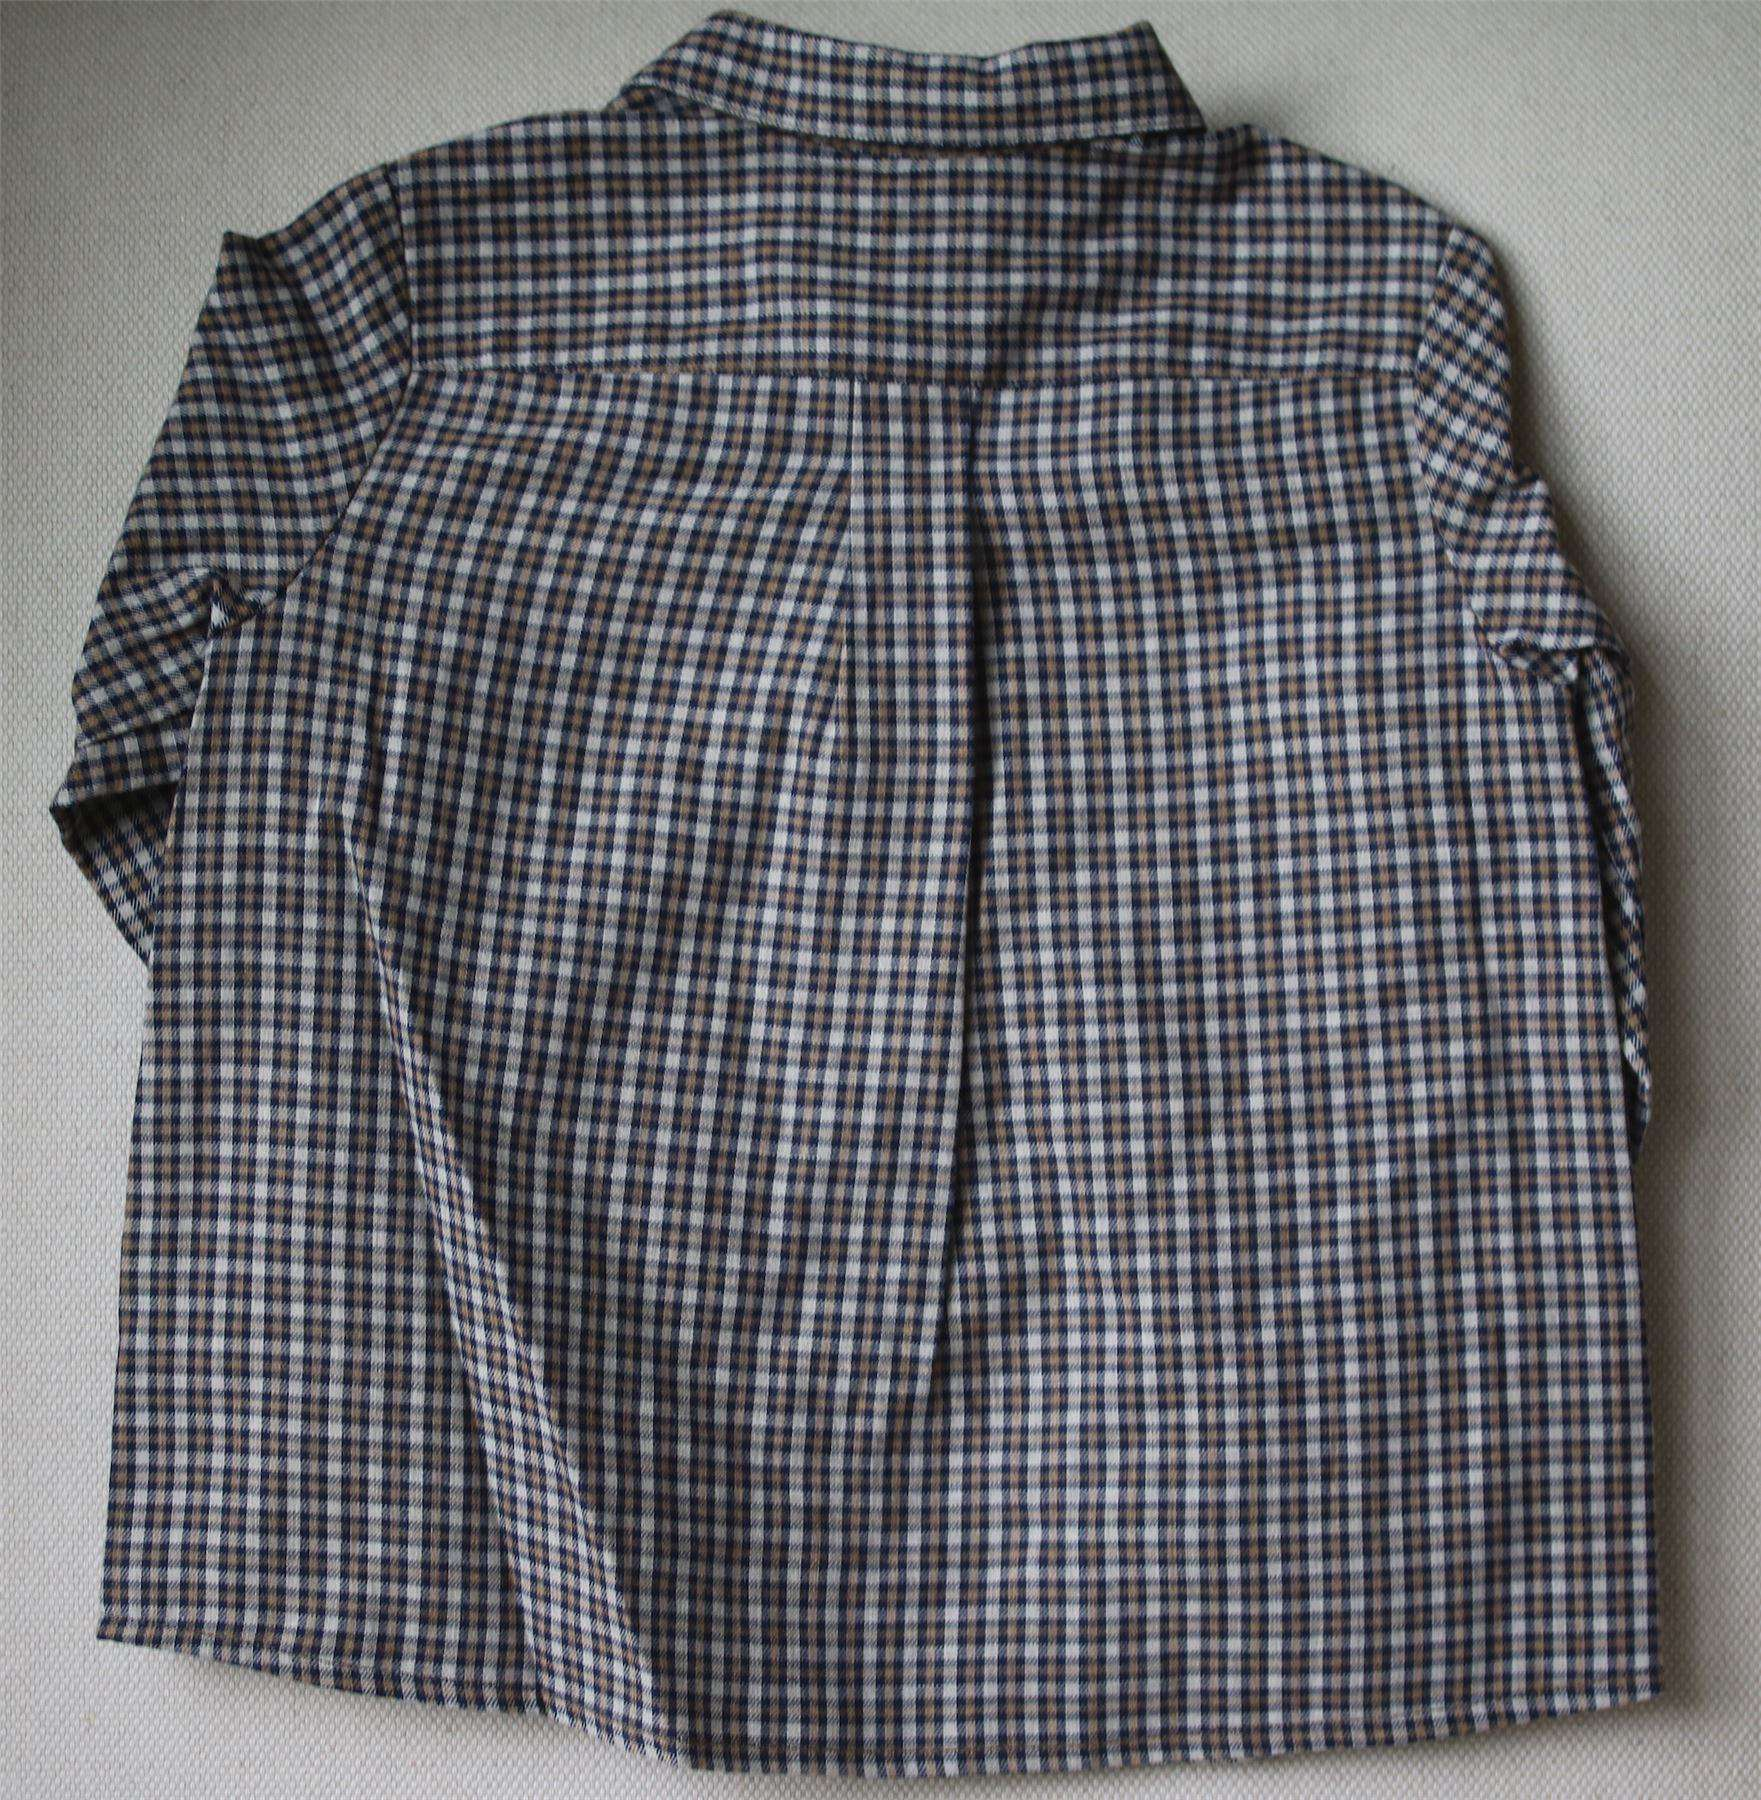 BONPOINT BABY CHECK MALO SHIRT 2 YEARS